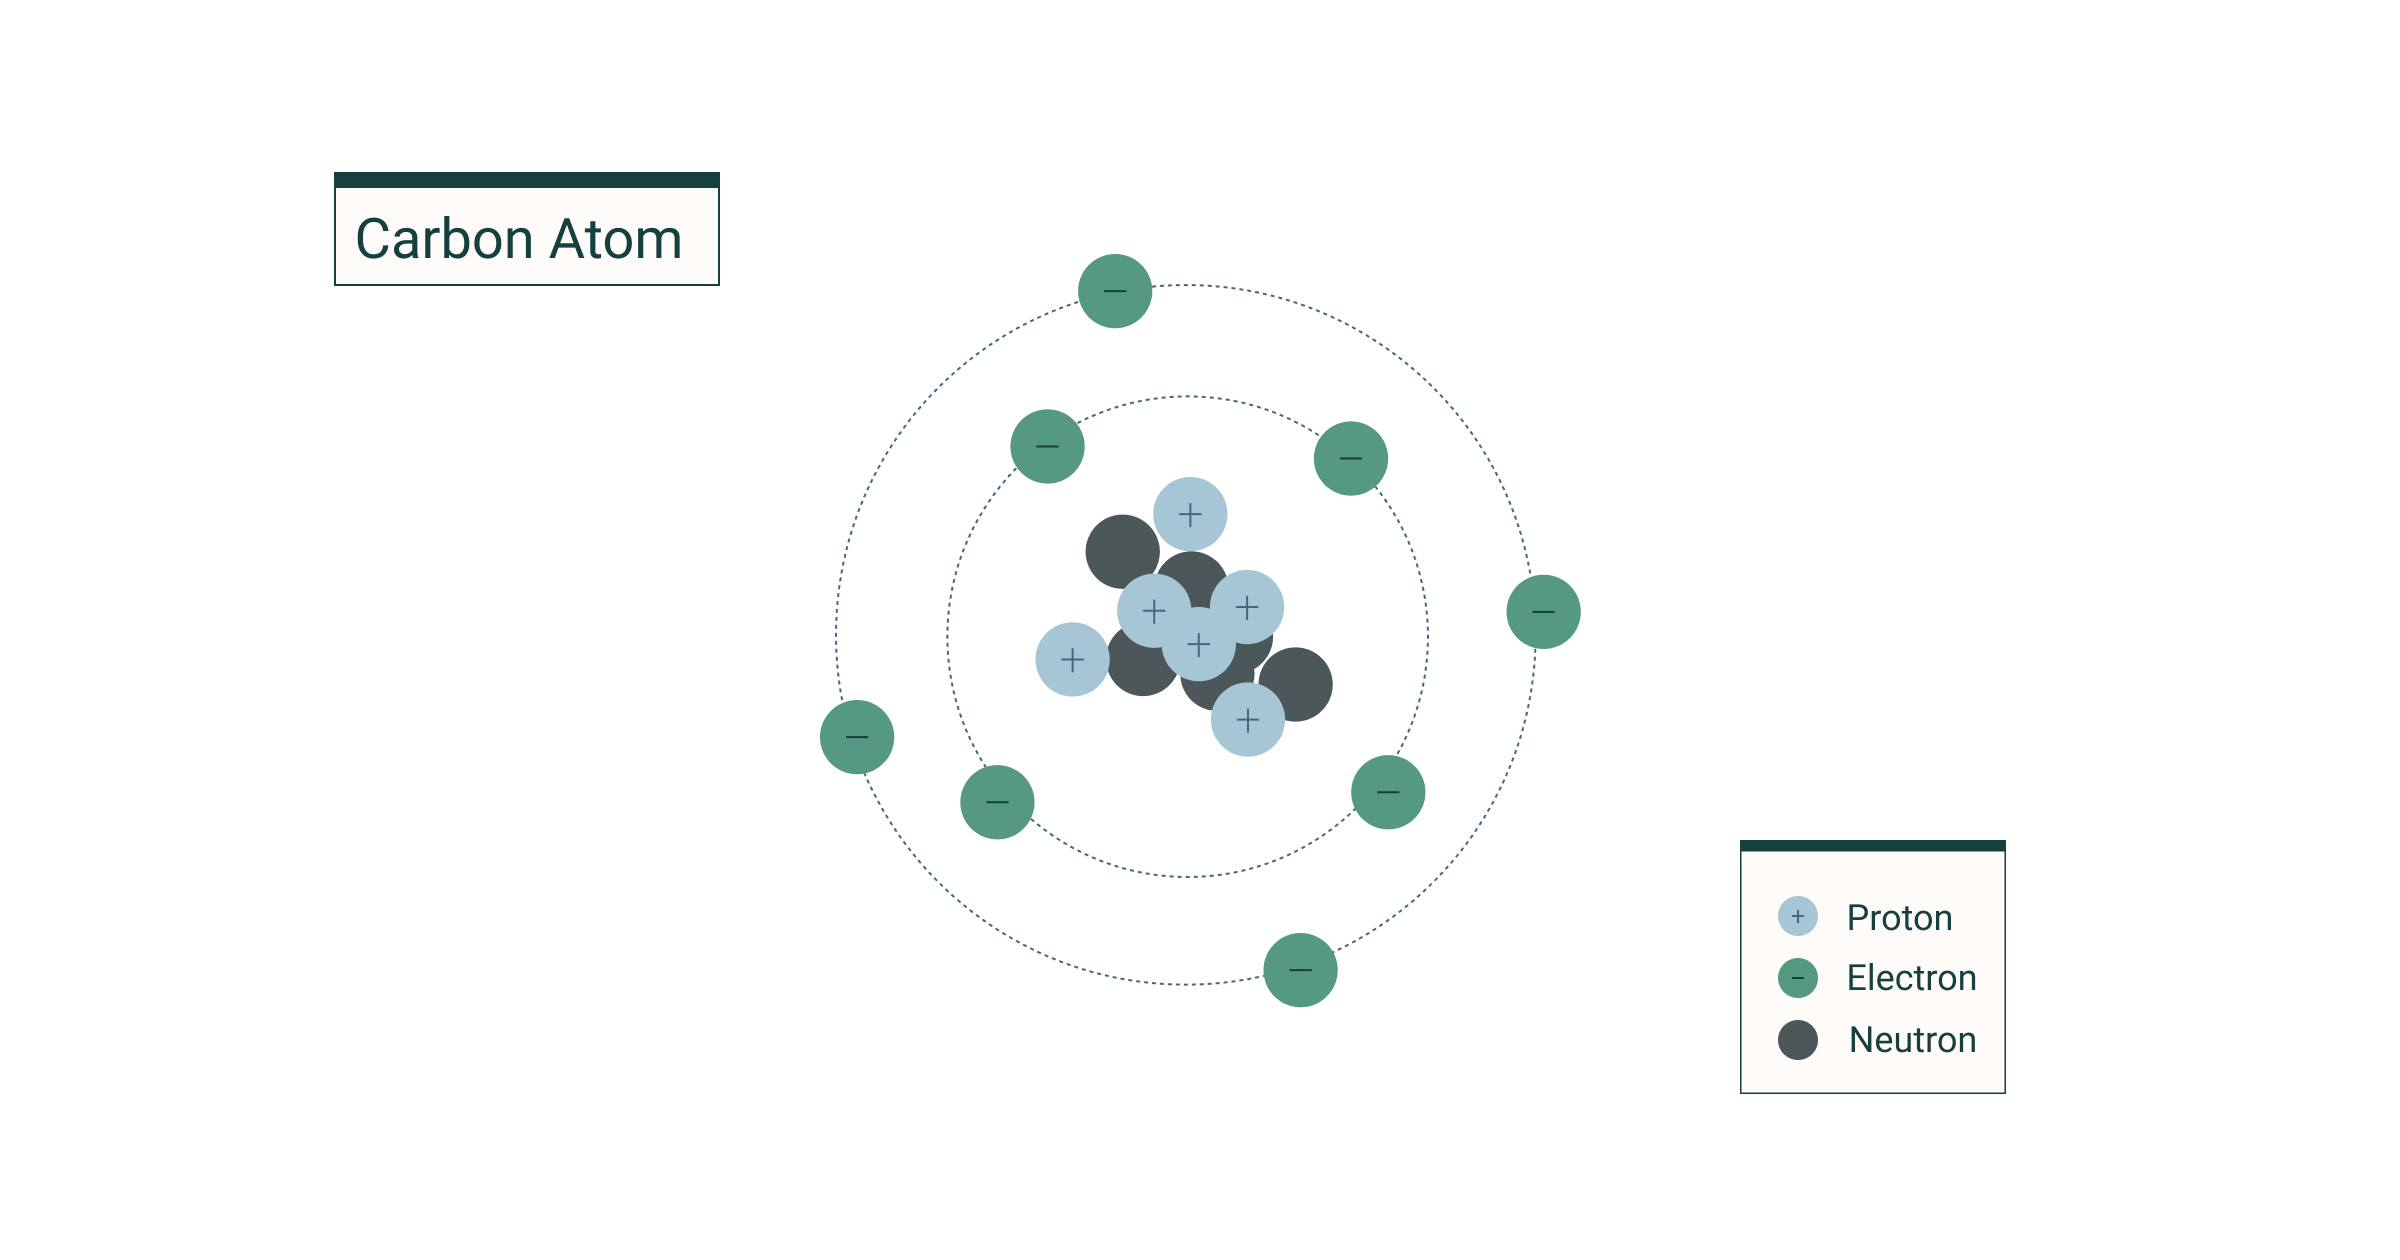 The Atomic Structure In The Periodic Table